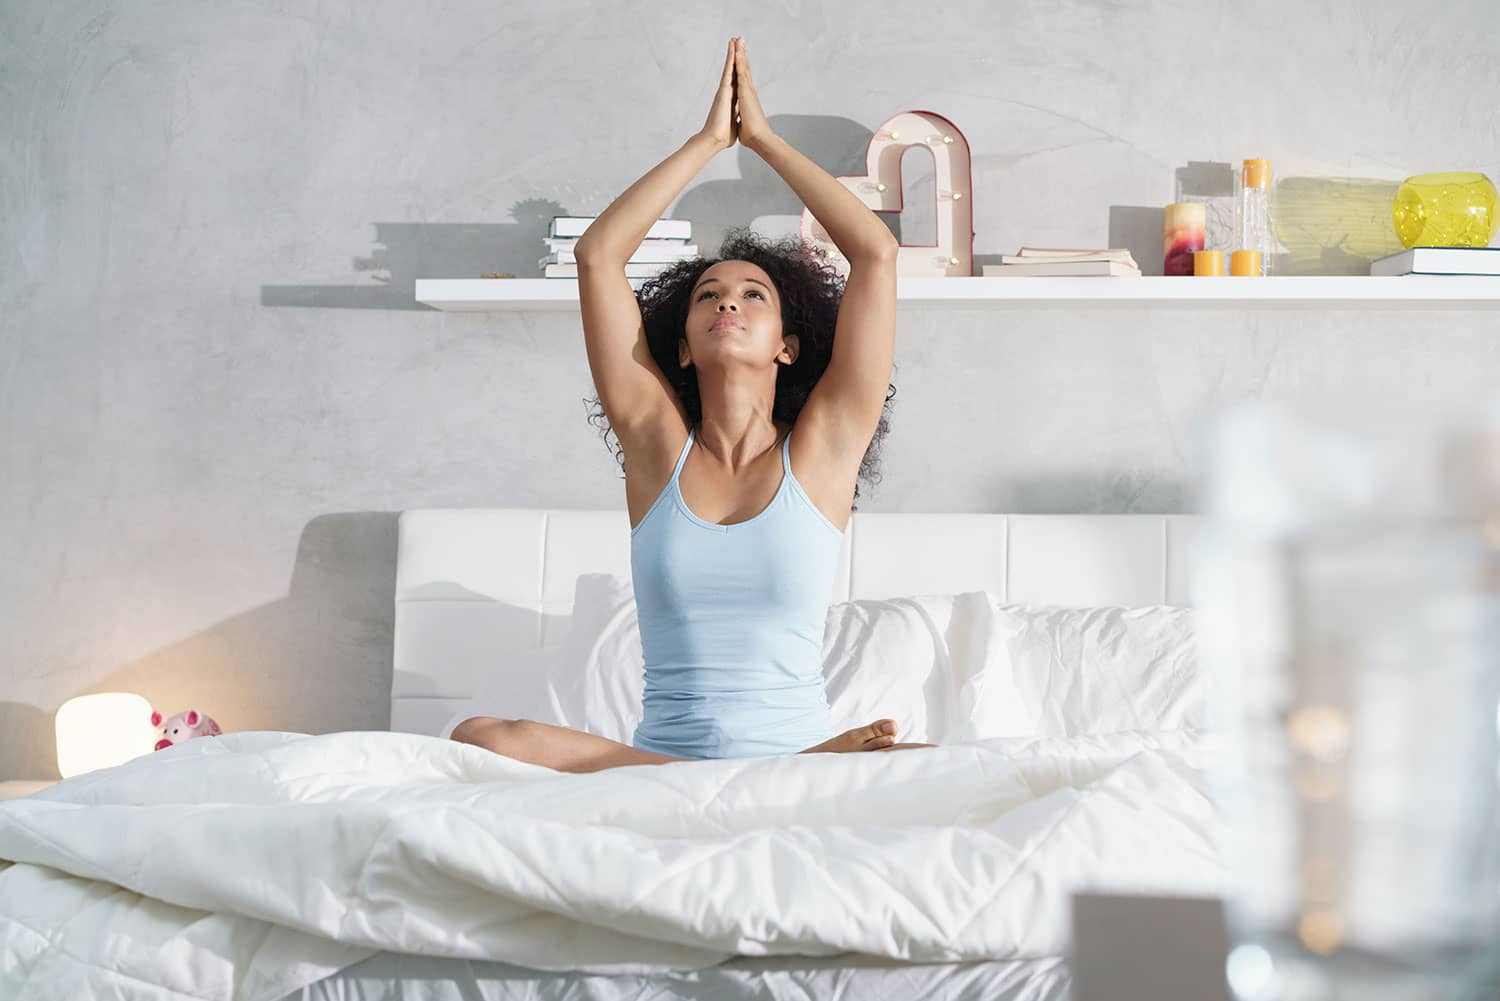 Yoga in Bed 10 Best Poses for a Restful Night of Sleep